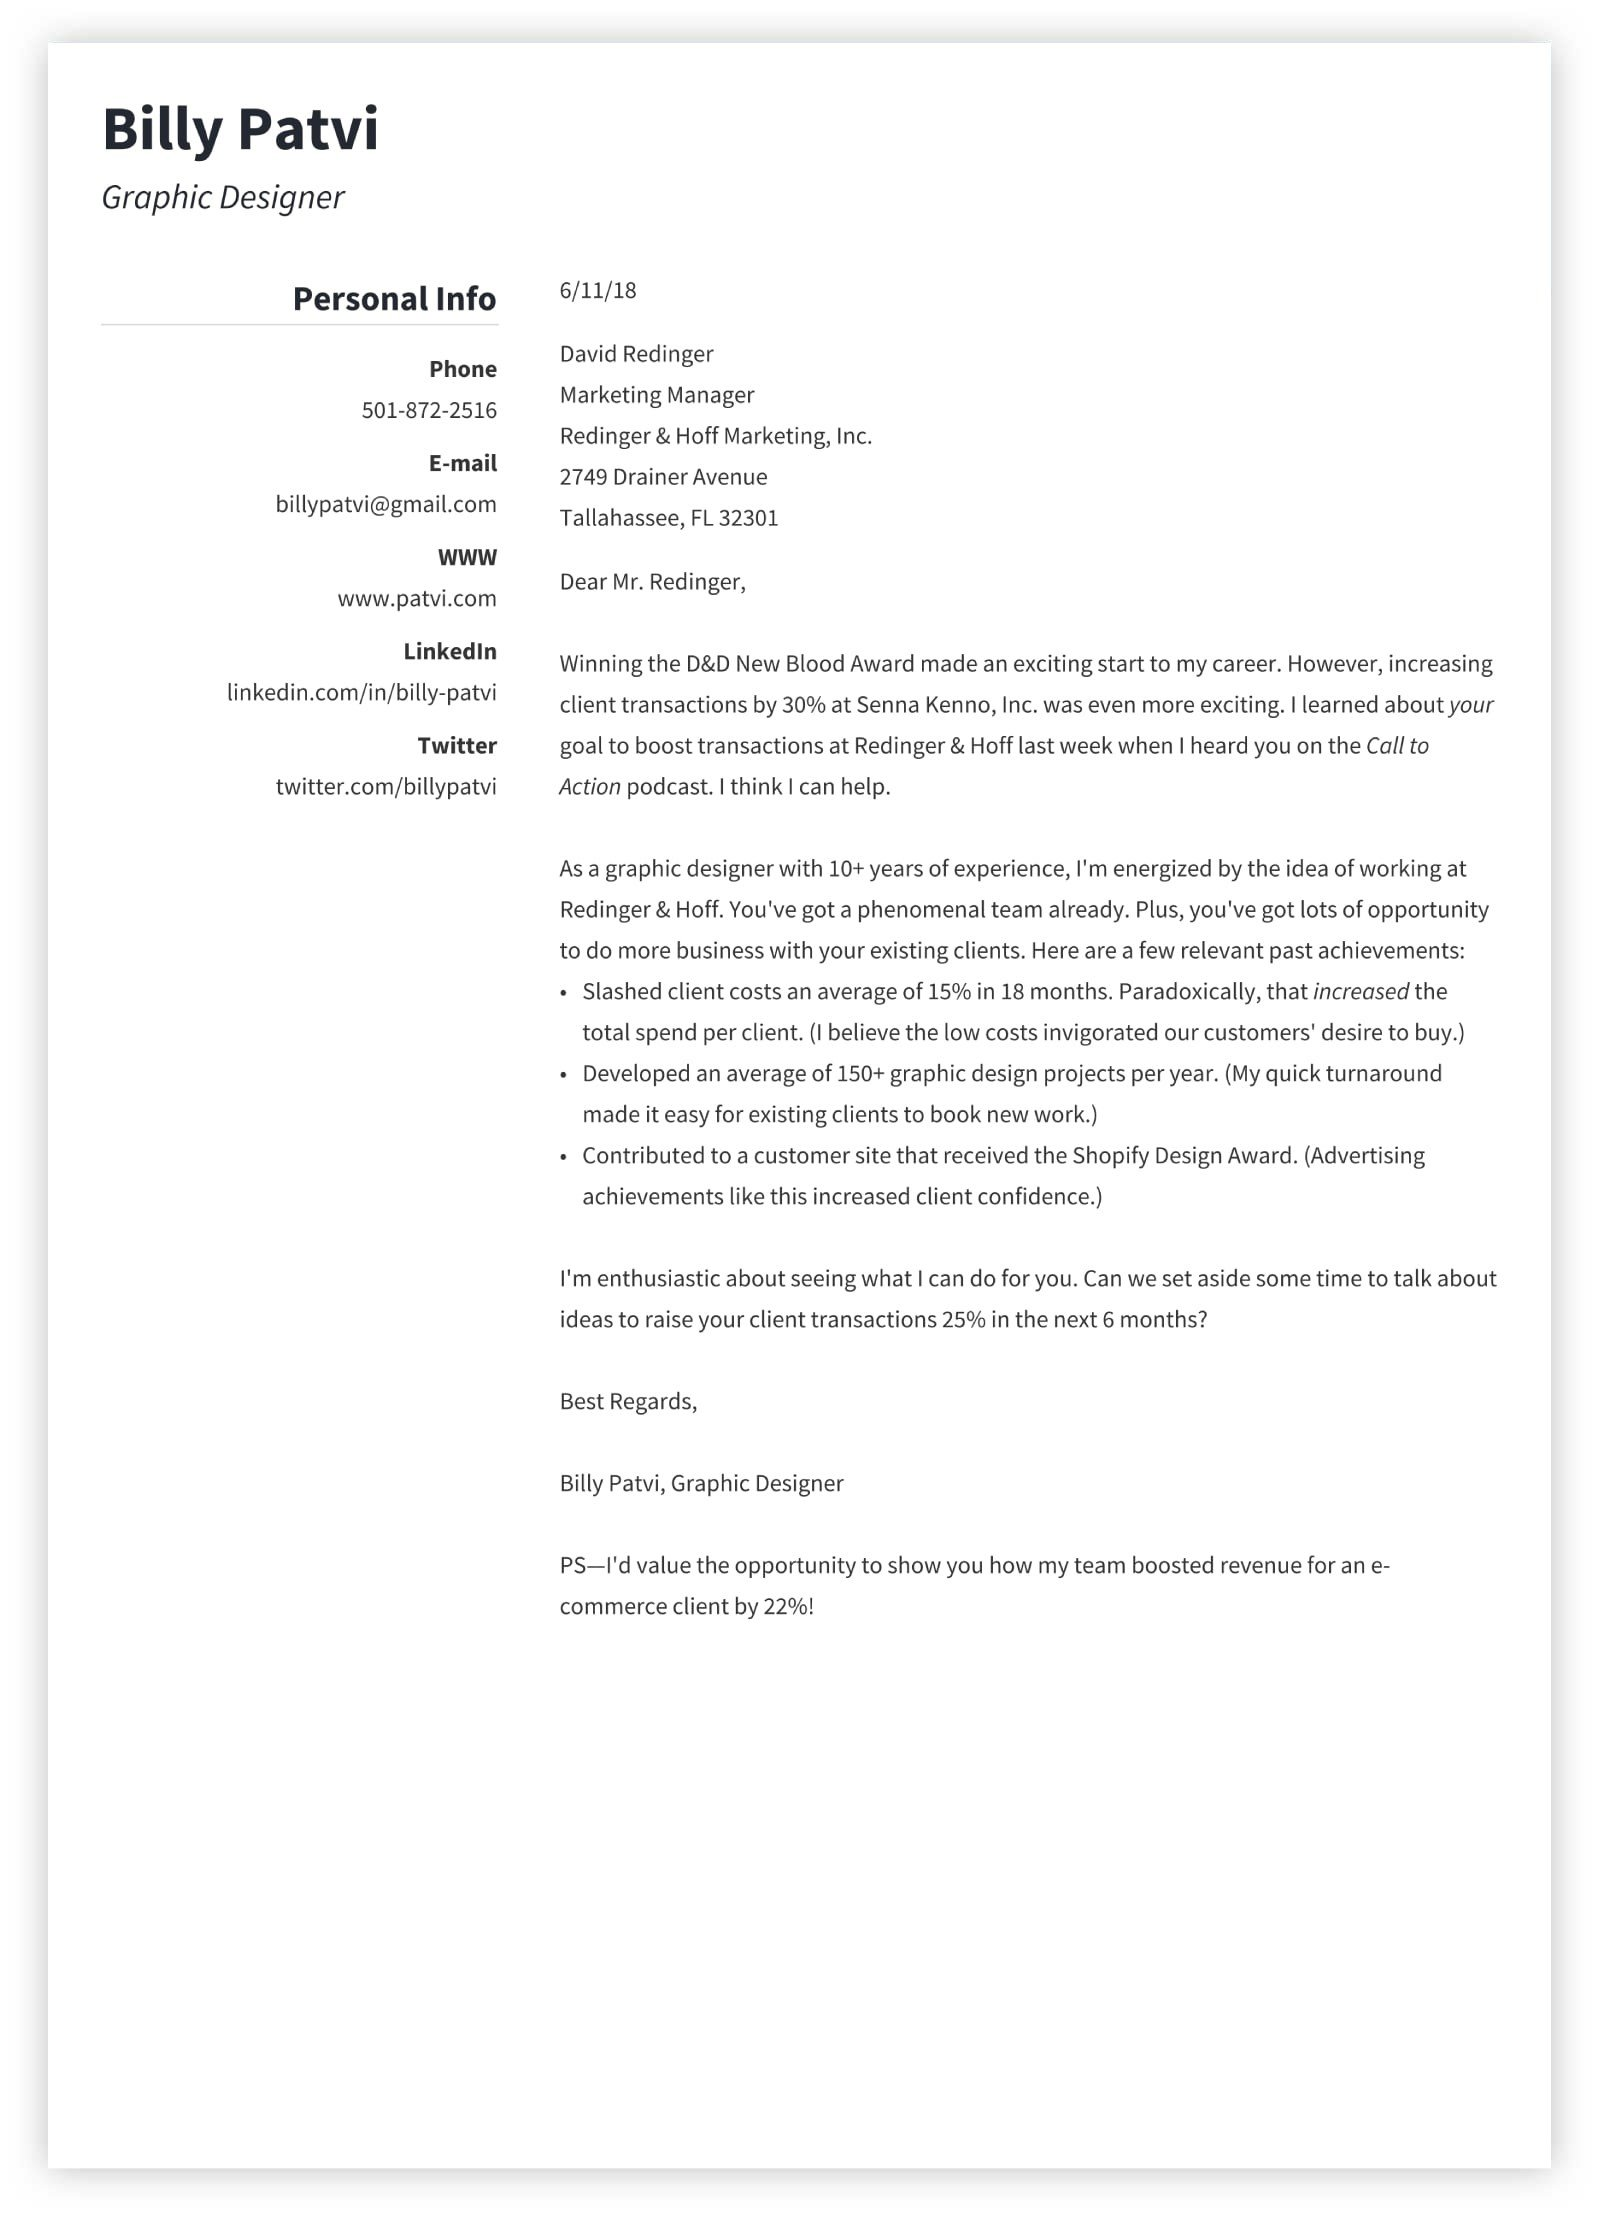 How to Write a Cover Letter for a Resume 12 JobWinning Examples